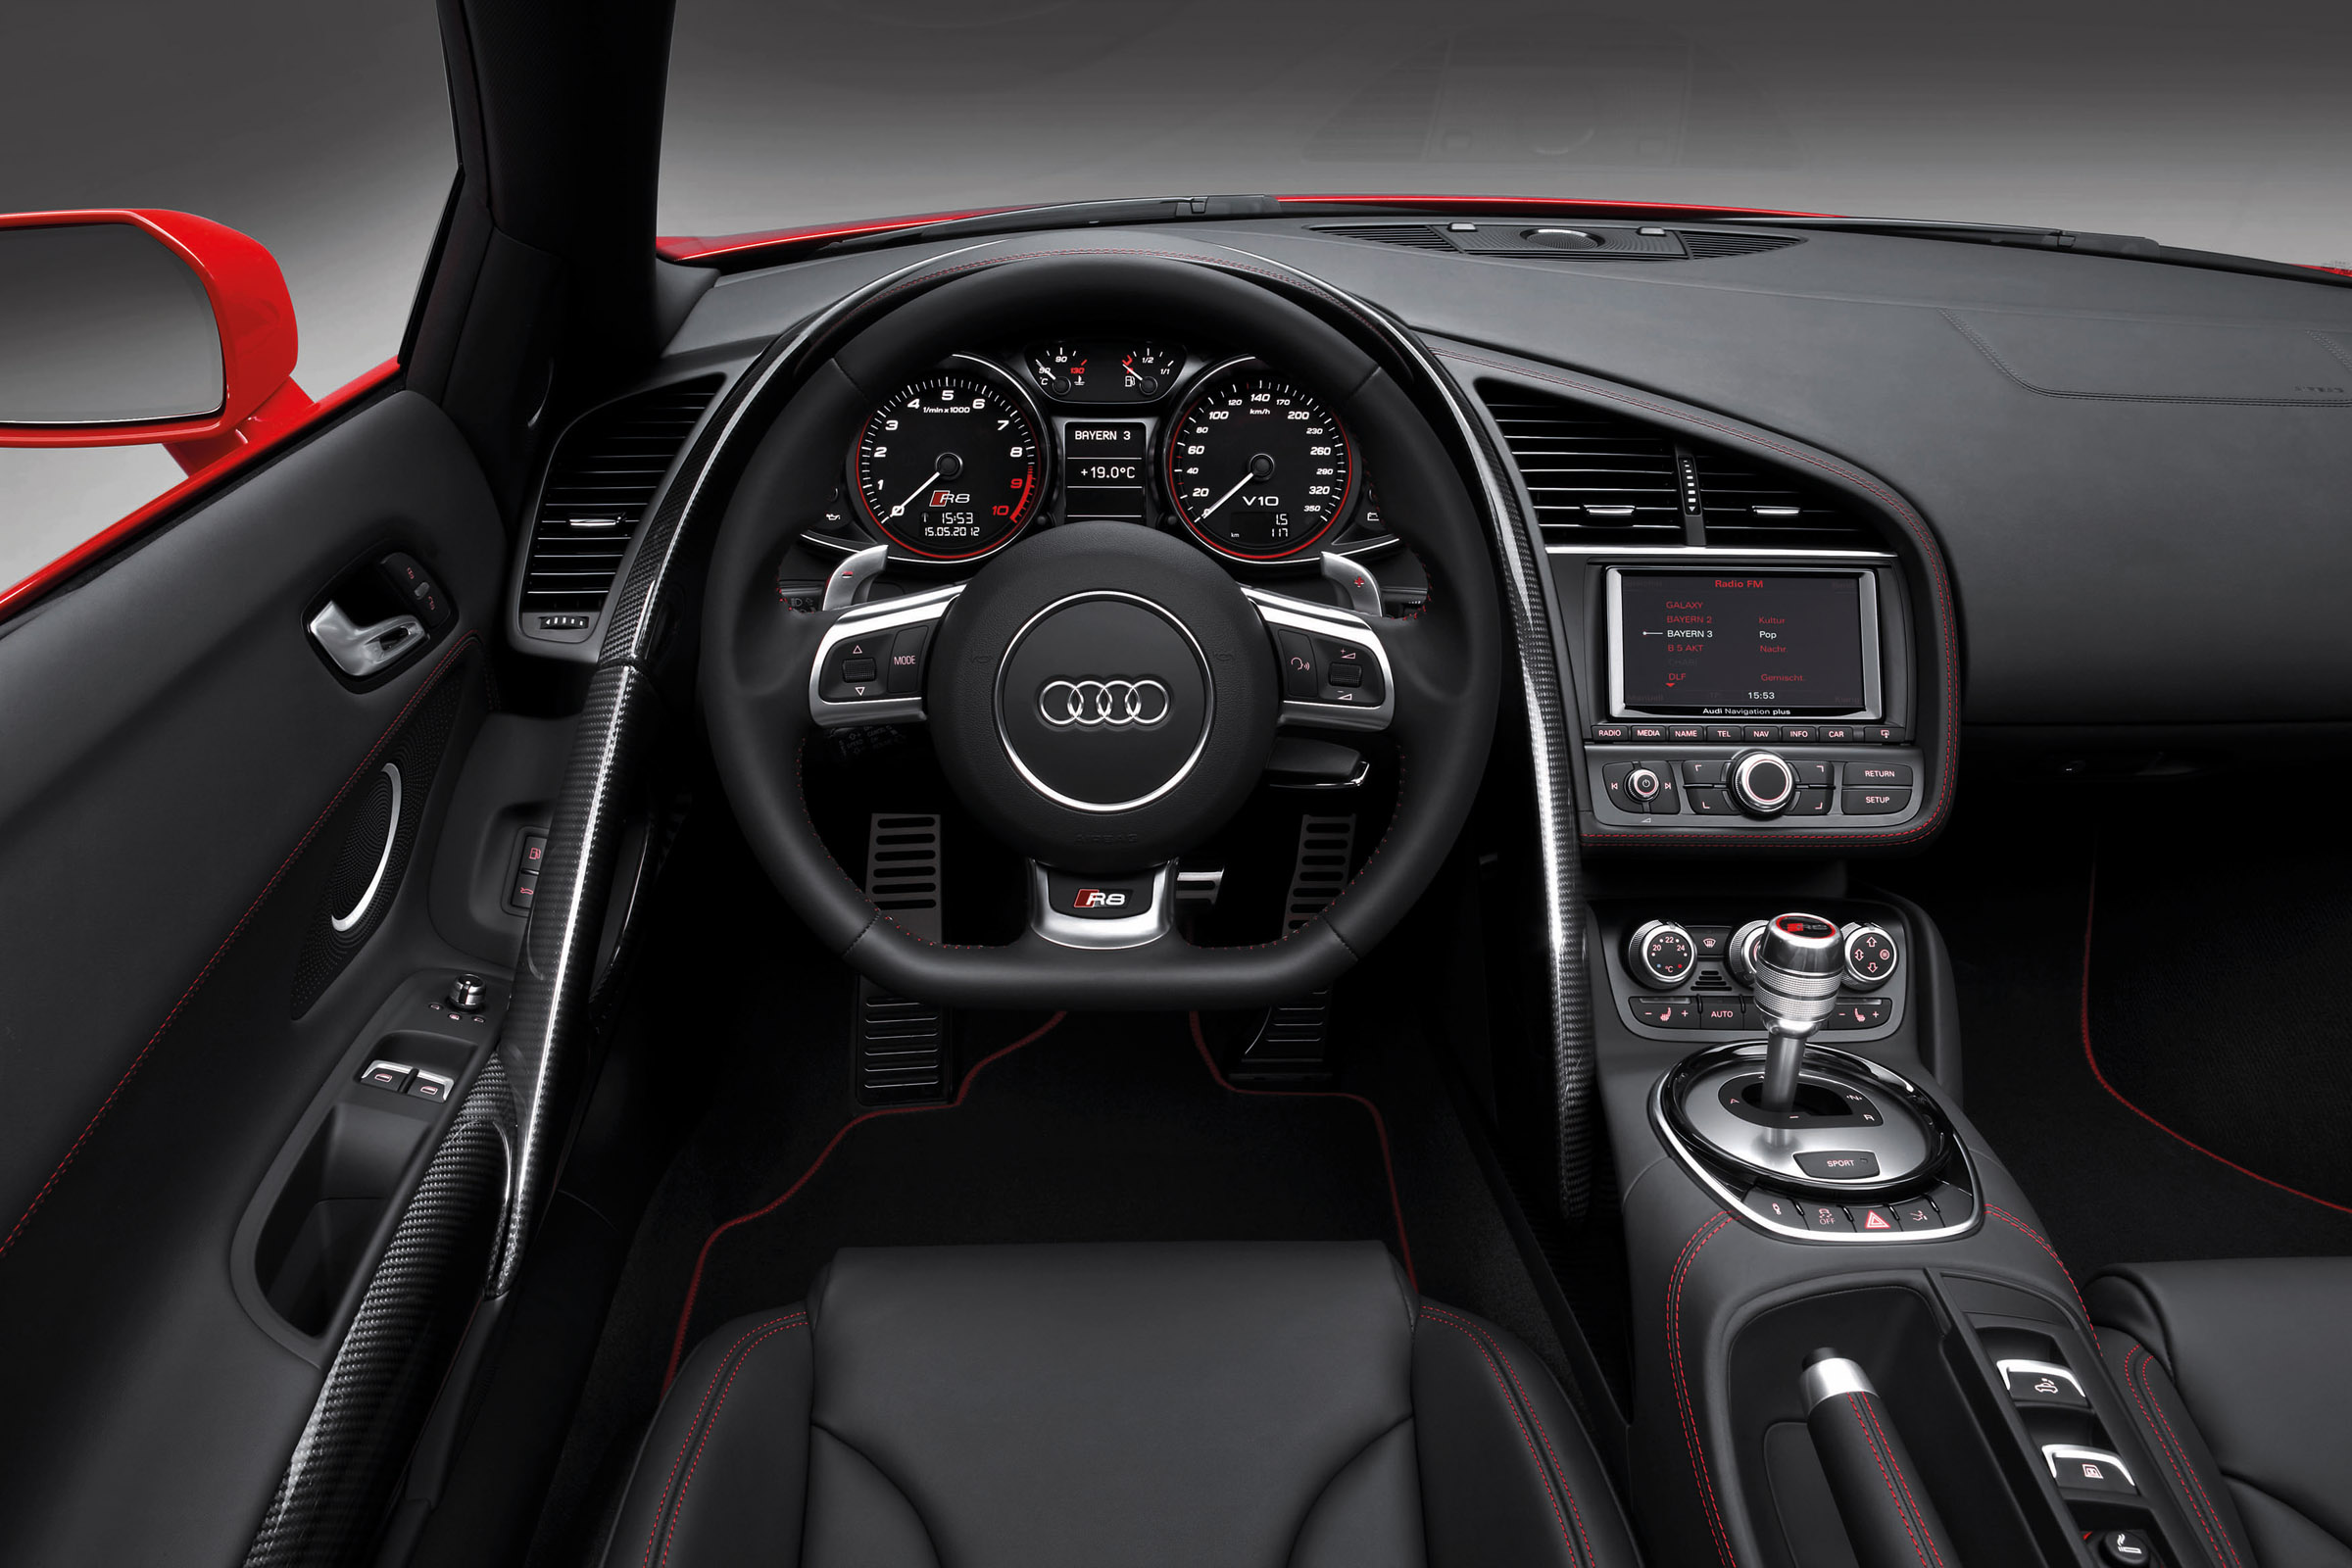 2013 Red Audi R8 Spyder V10 Interior